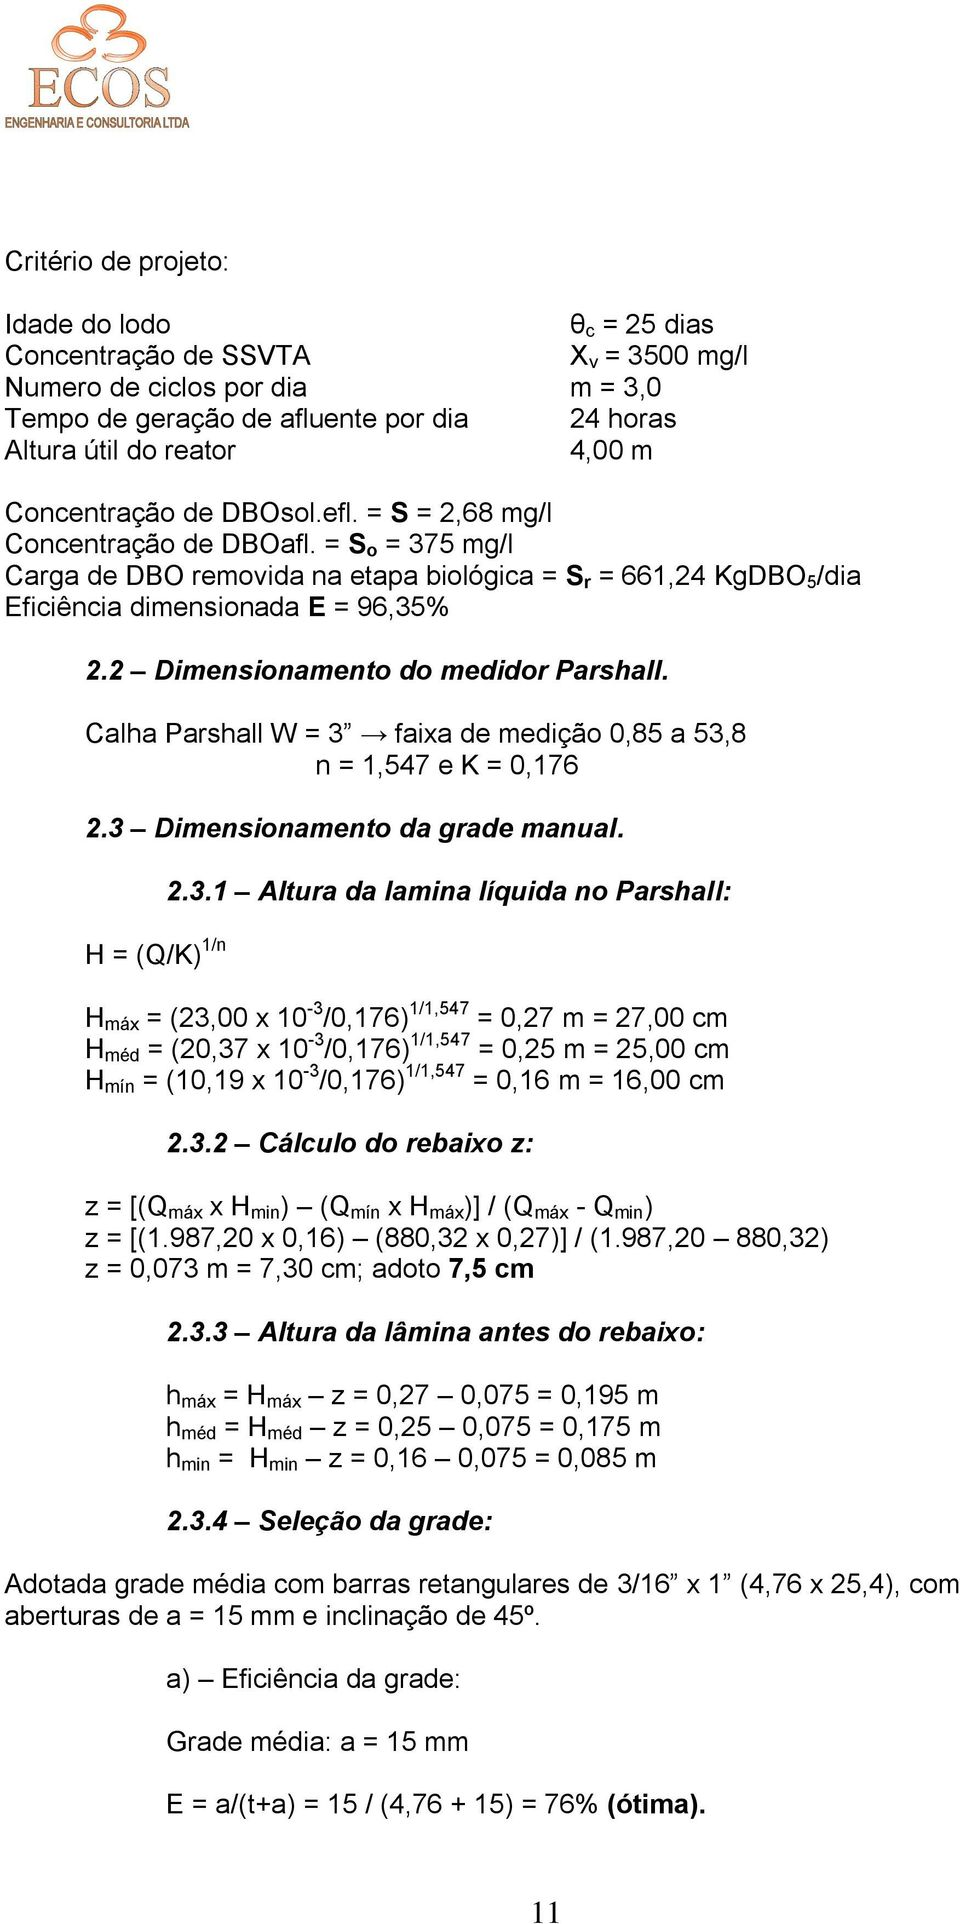 2 Dimensionamento do medidor Parshall. Calha Parshall W = 3